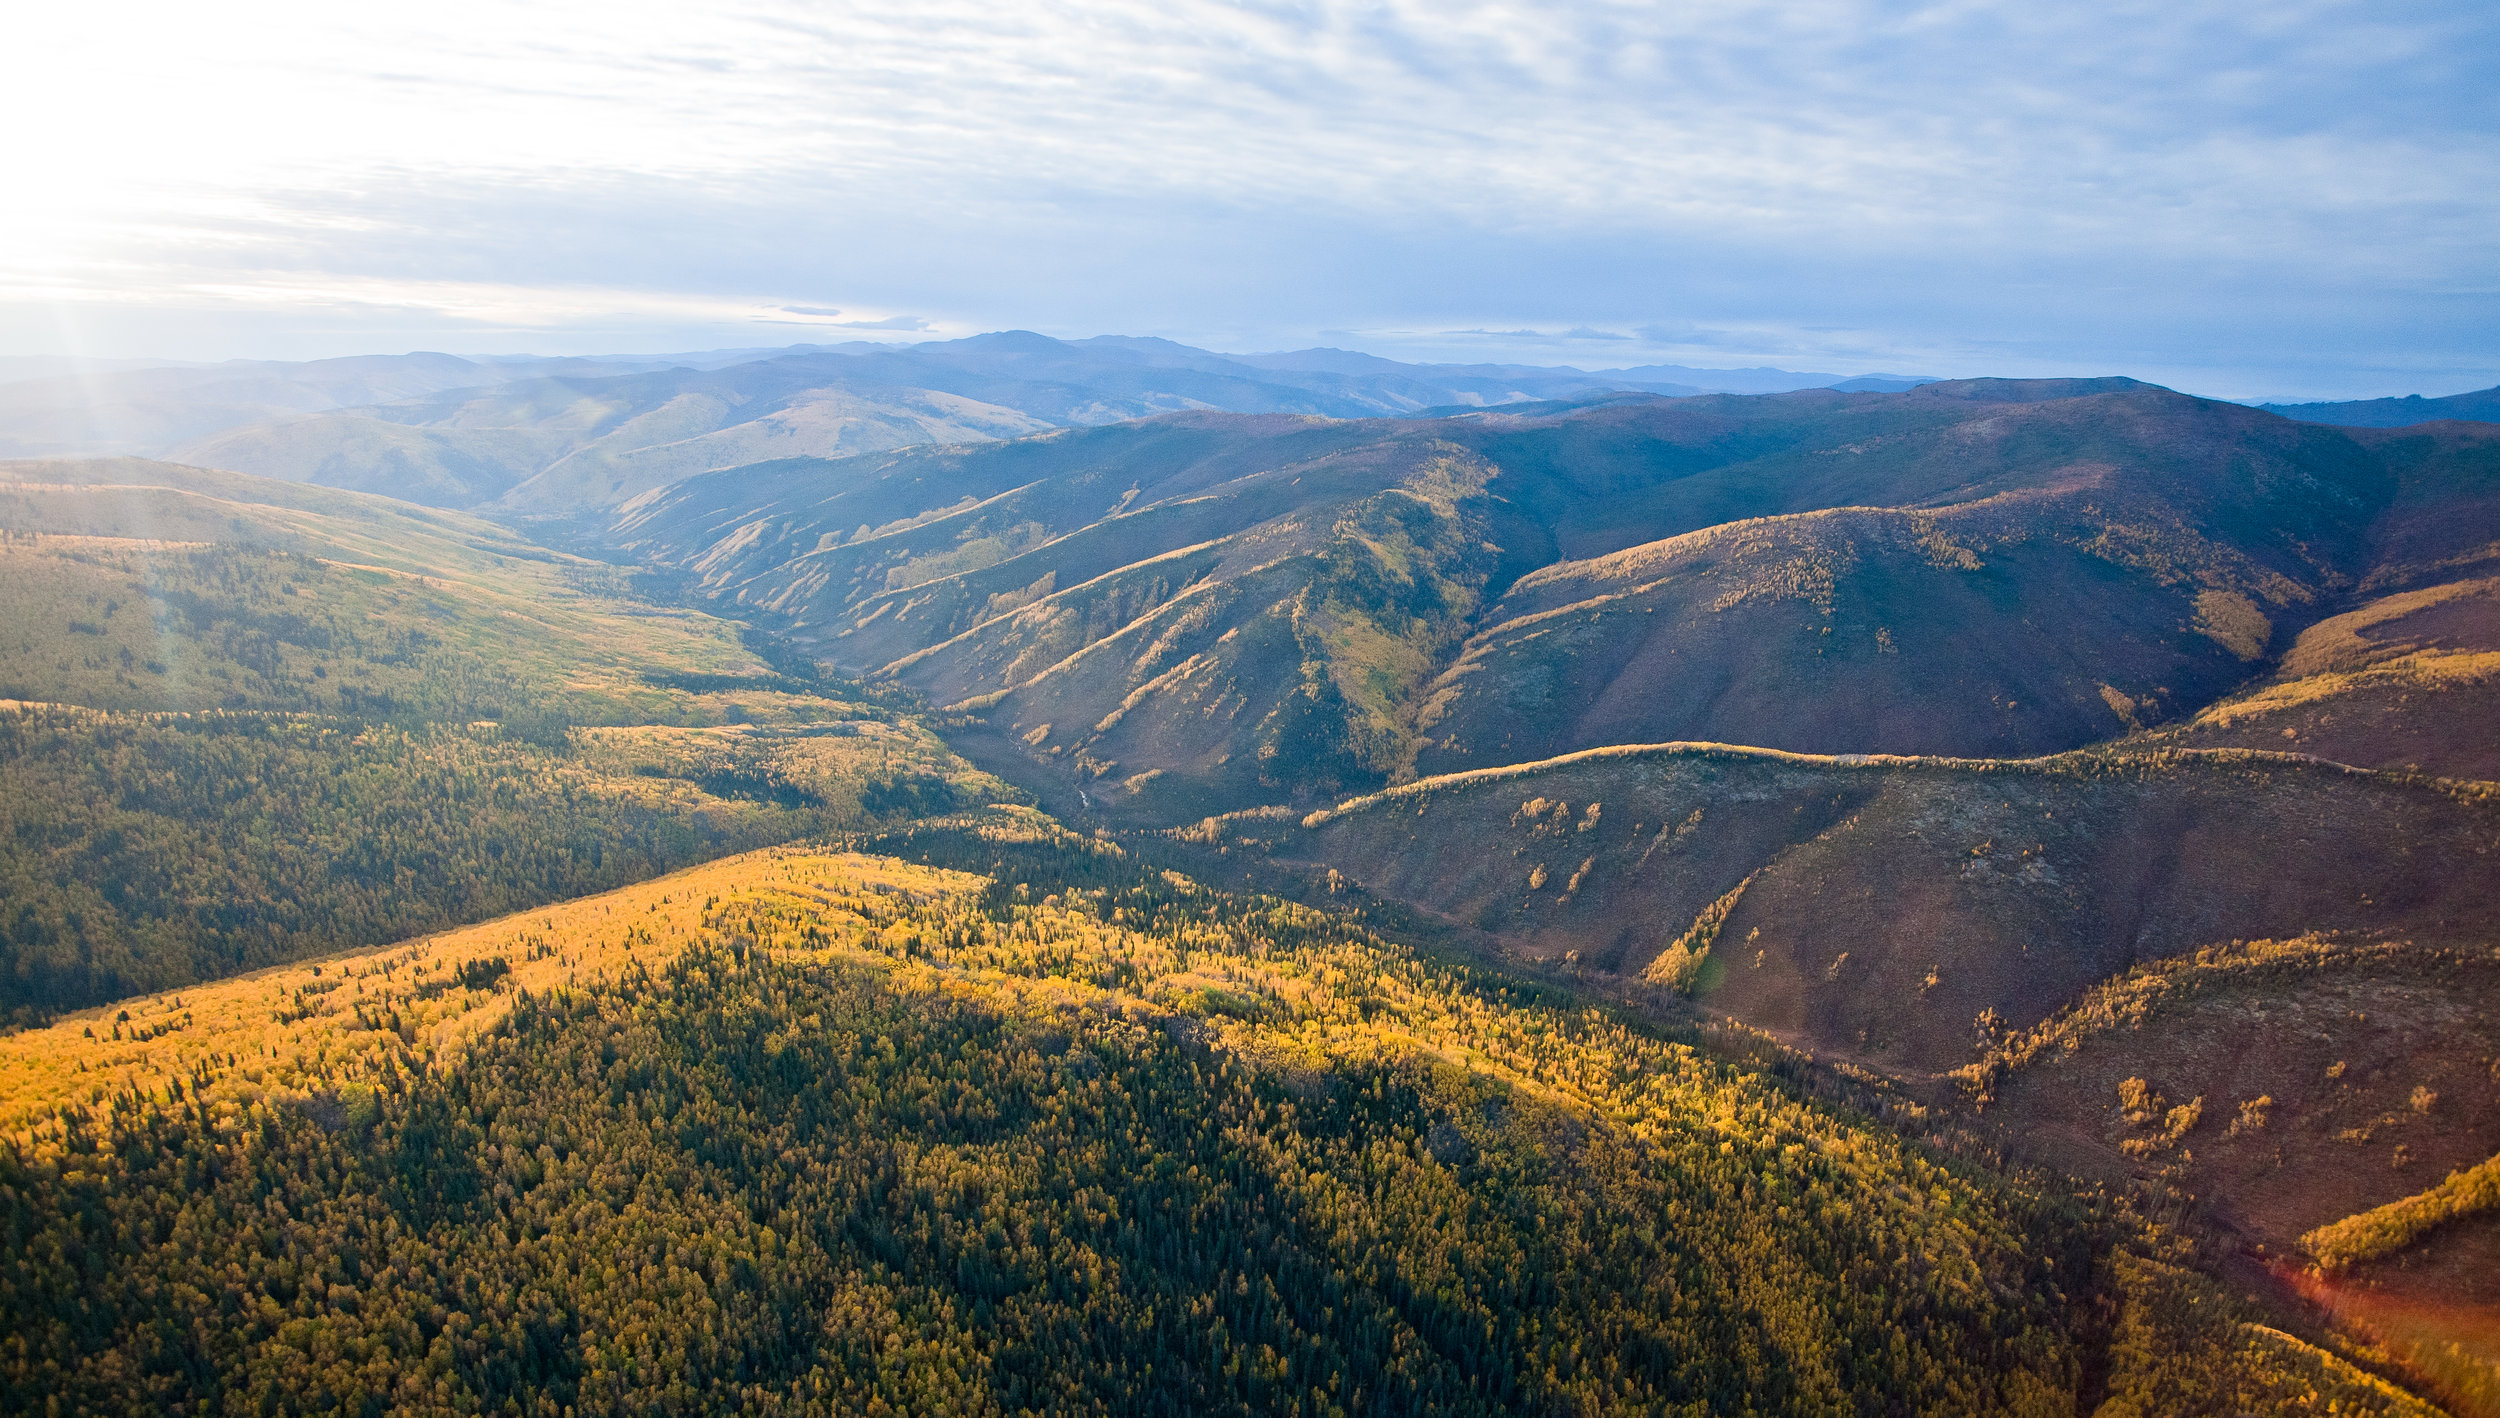 The proposed site of the Coffee Gold mine project glimmers under the Yukon sun. Photo by Jesse Kirkby